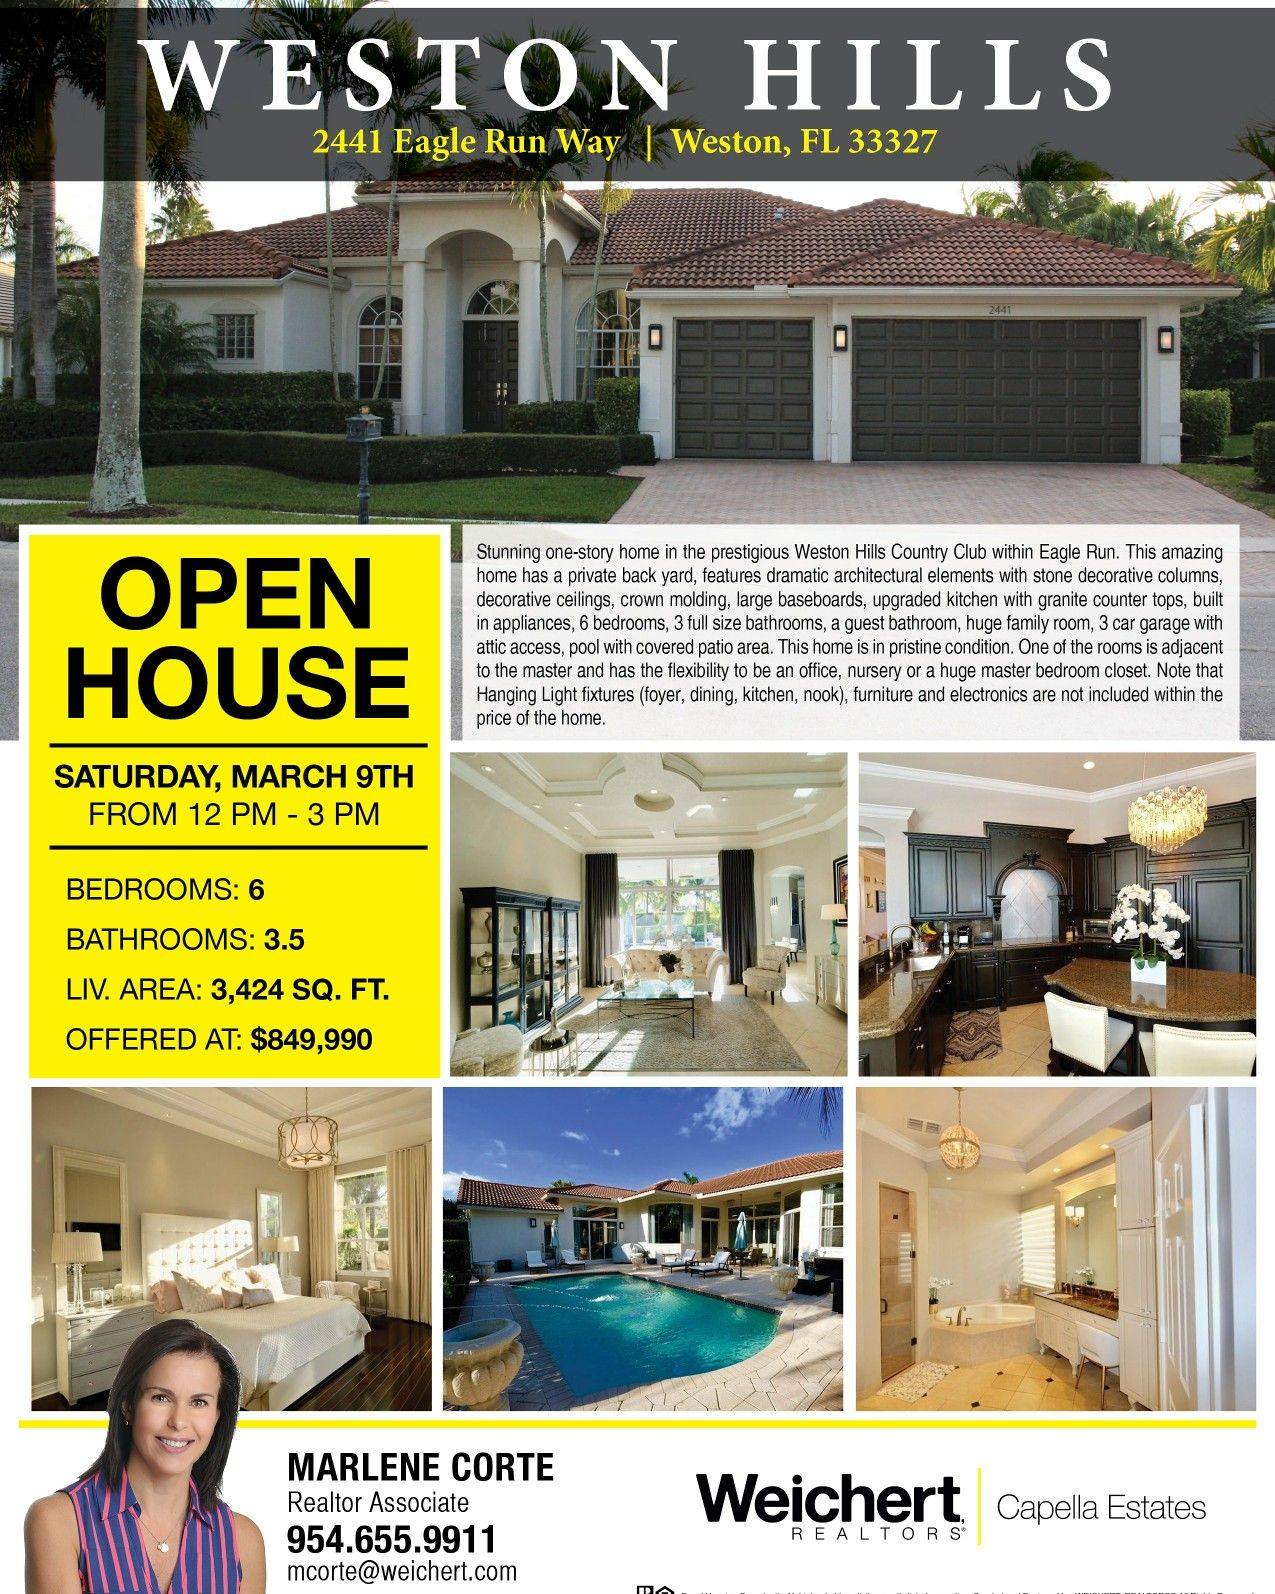 Pin on Homes For Sale in Weston, Fl.